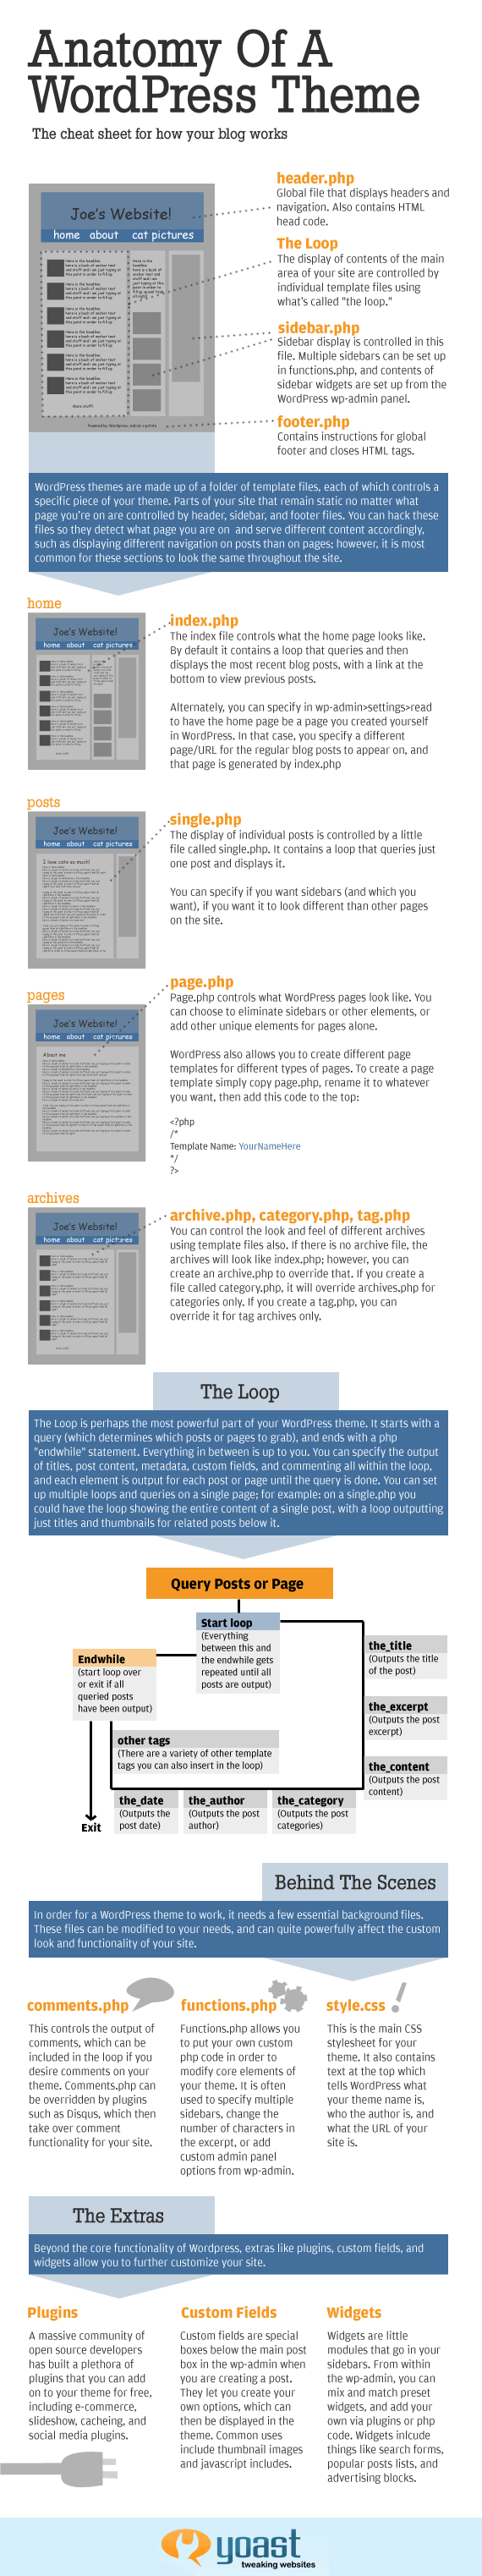 WordPress Anatomy of a Theme Infographic